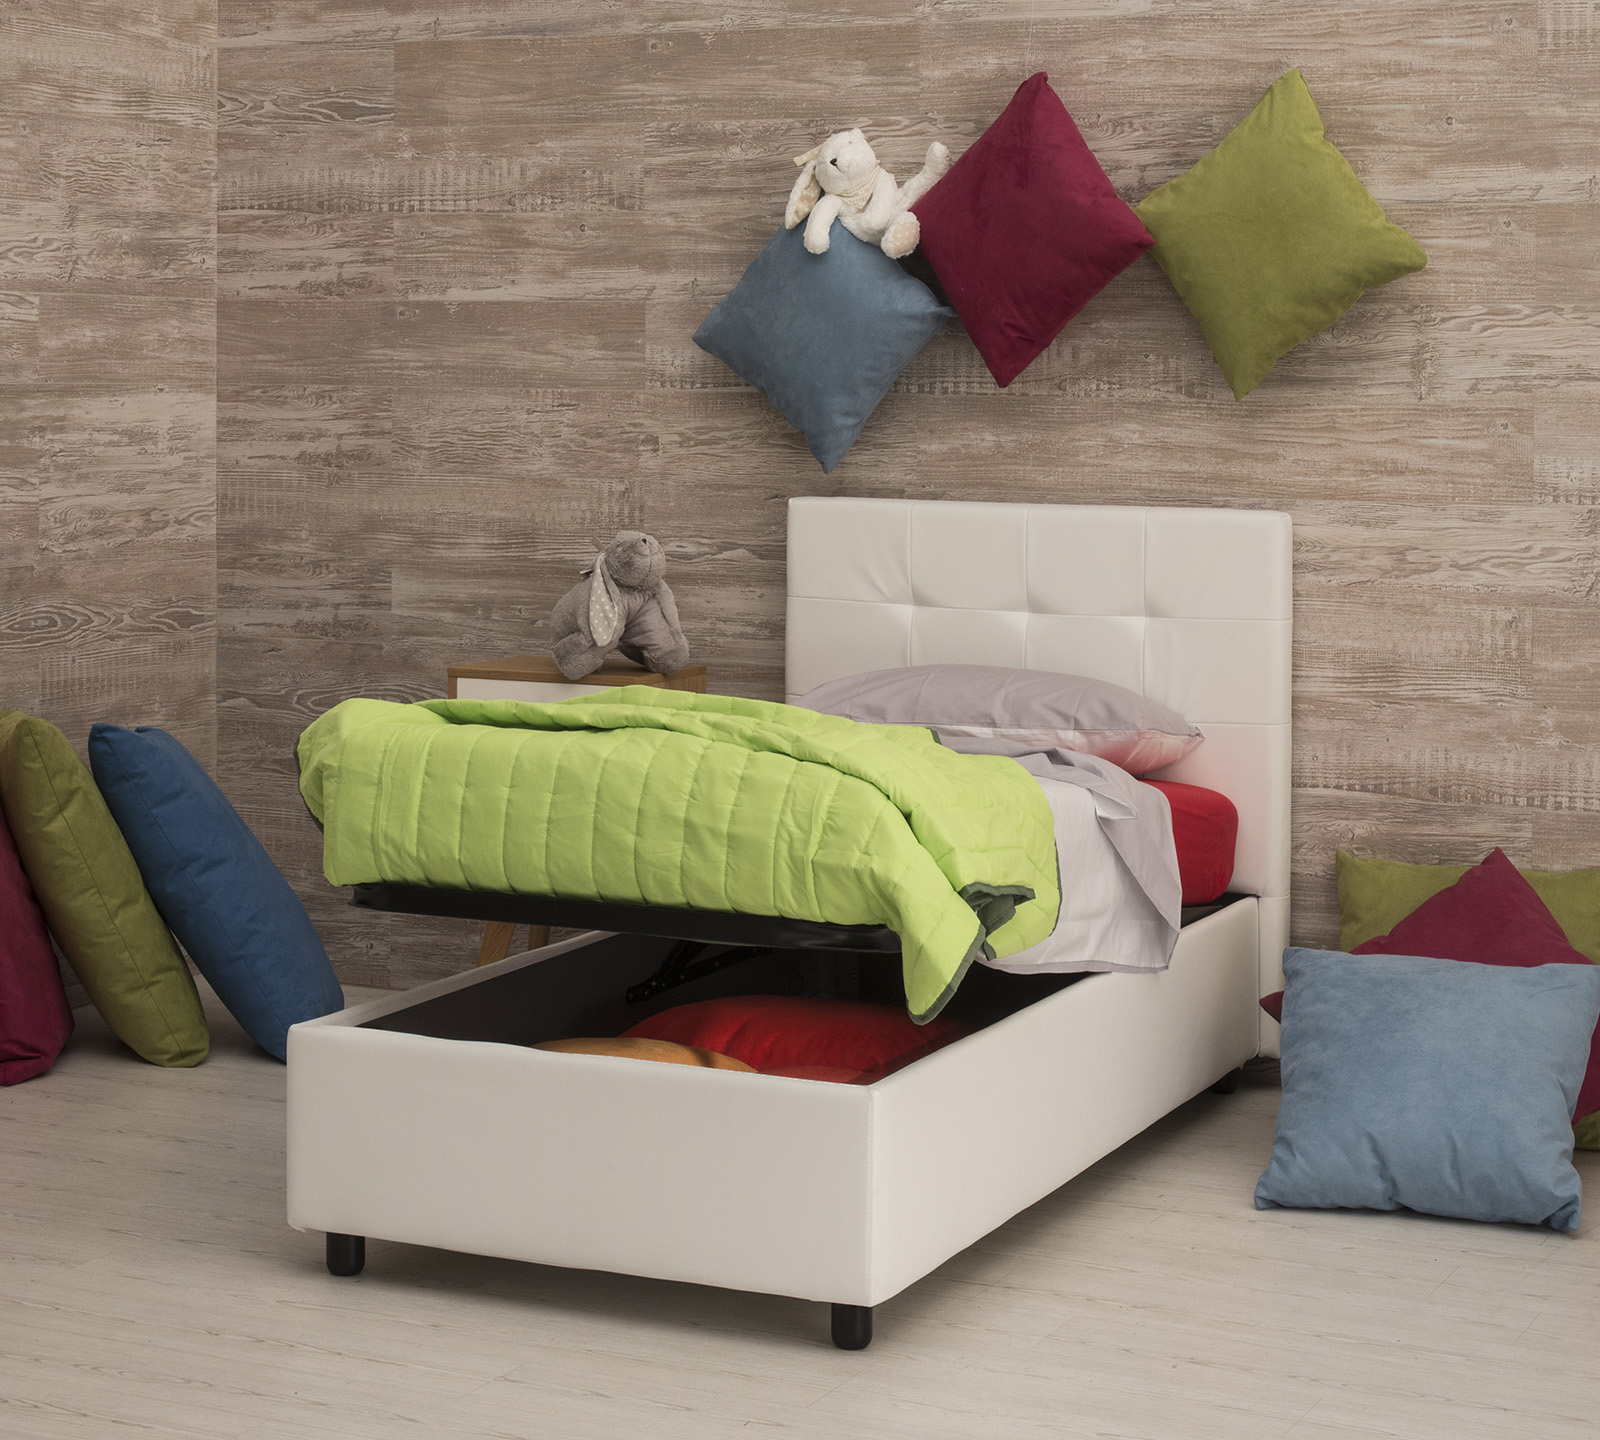 https://s3-eu-west-1.amazonaws.com/duzzle/production/spree/products/6046/original/duzzle-letto-singolo-contenitore-agnese-aperto.jpg?1505710803